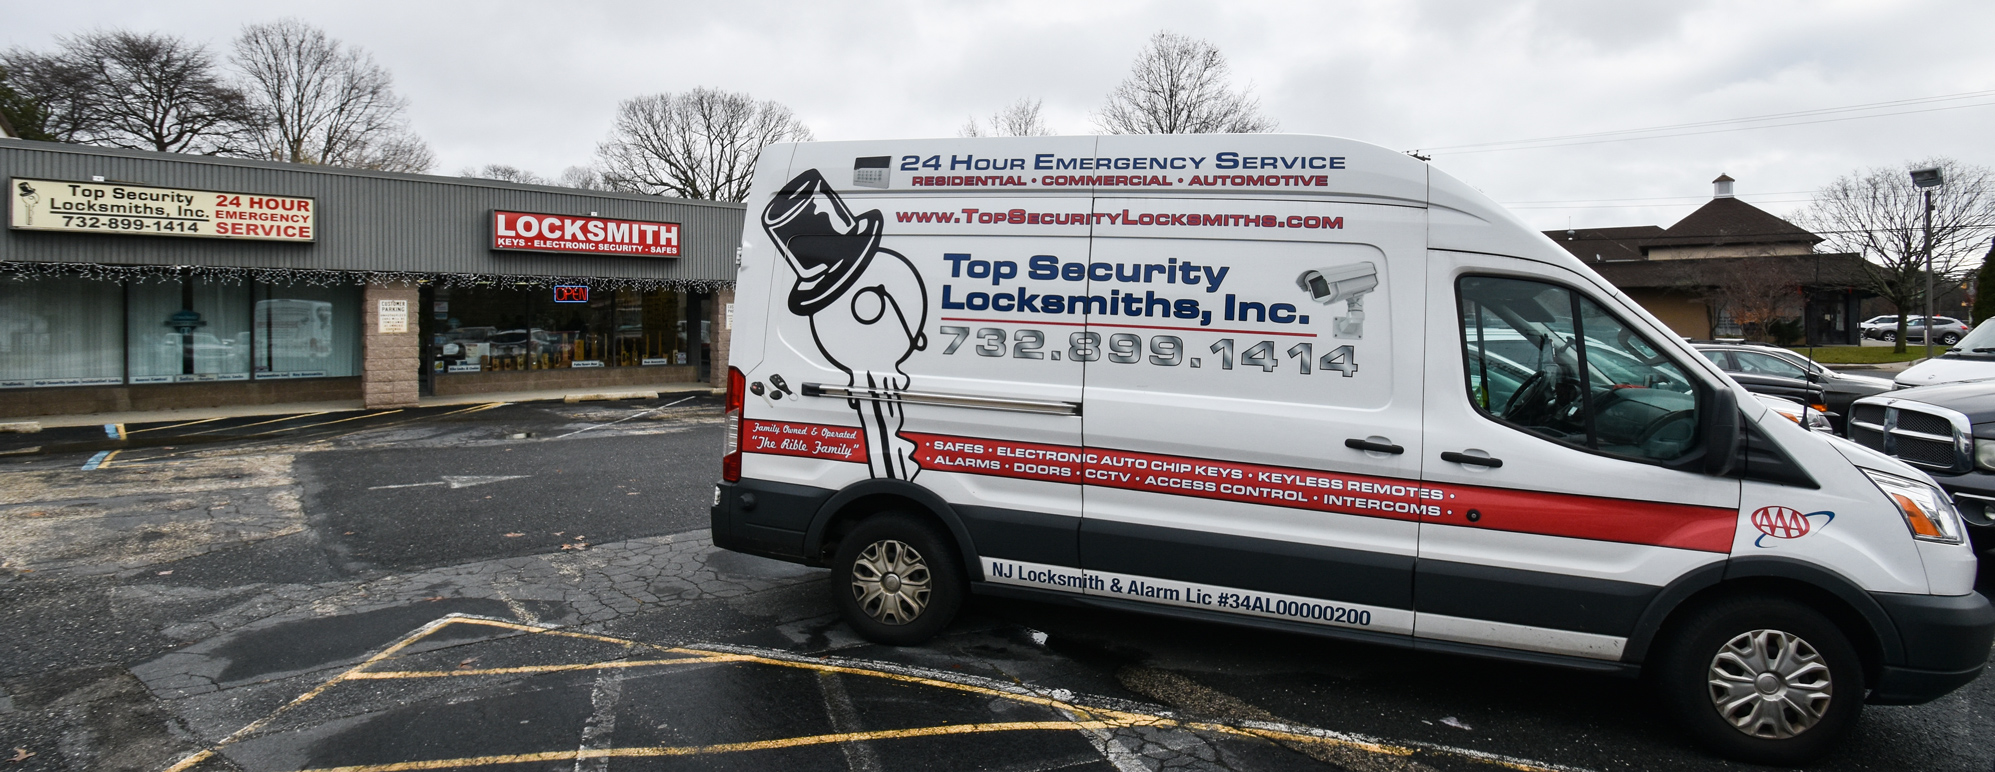 About Top Security Locksmiths Inc